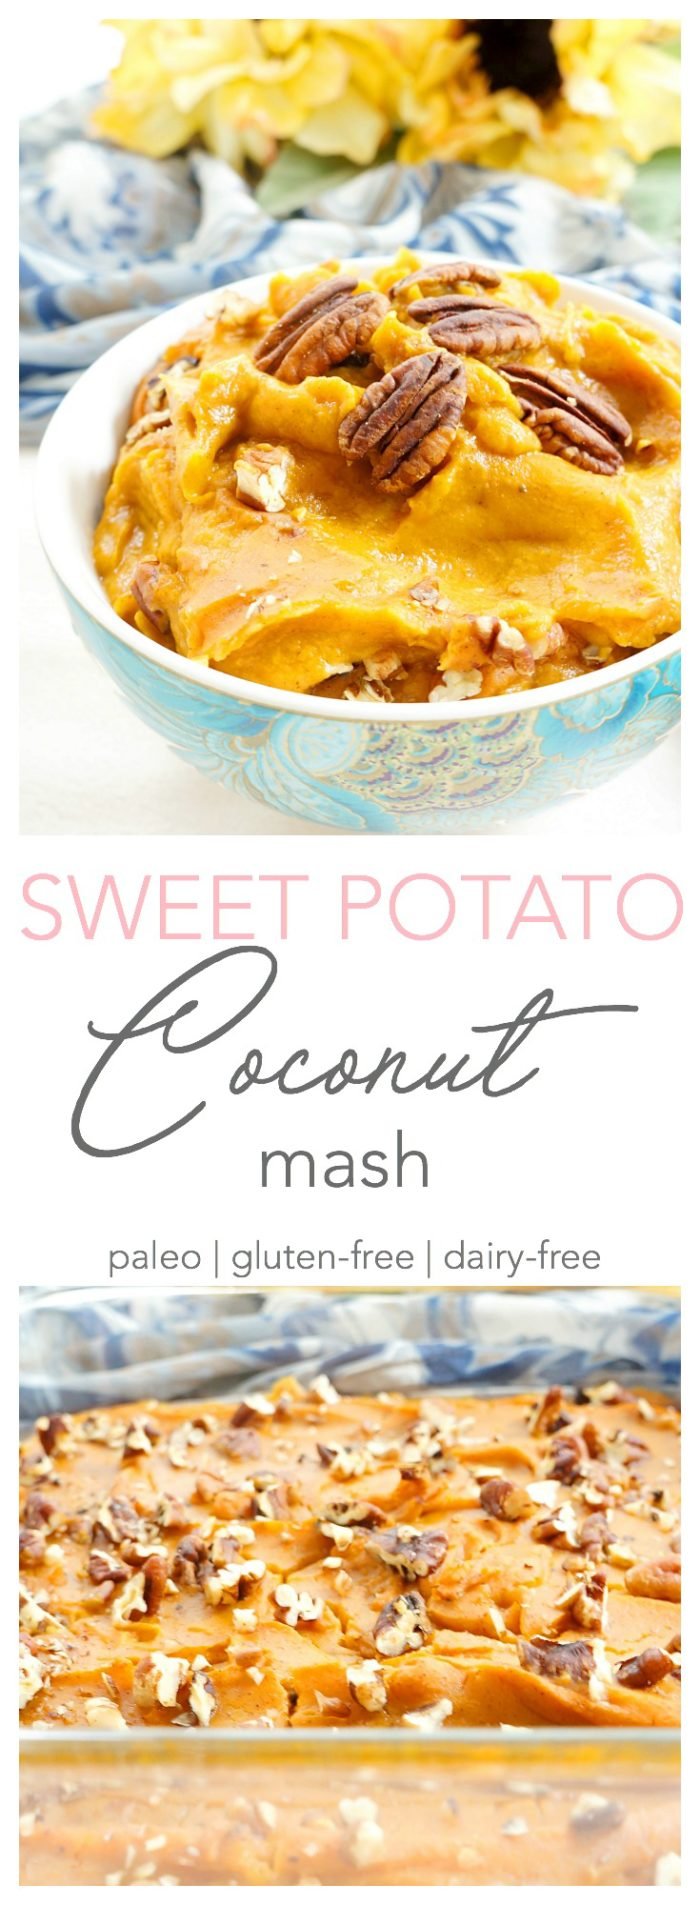 Sweet Potato Coconut Mash